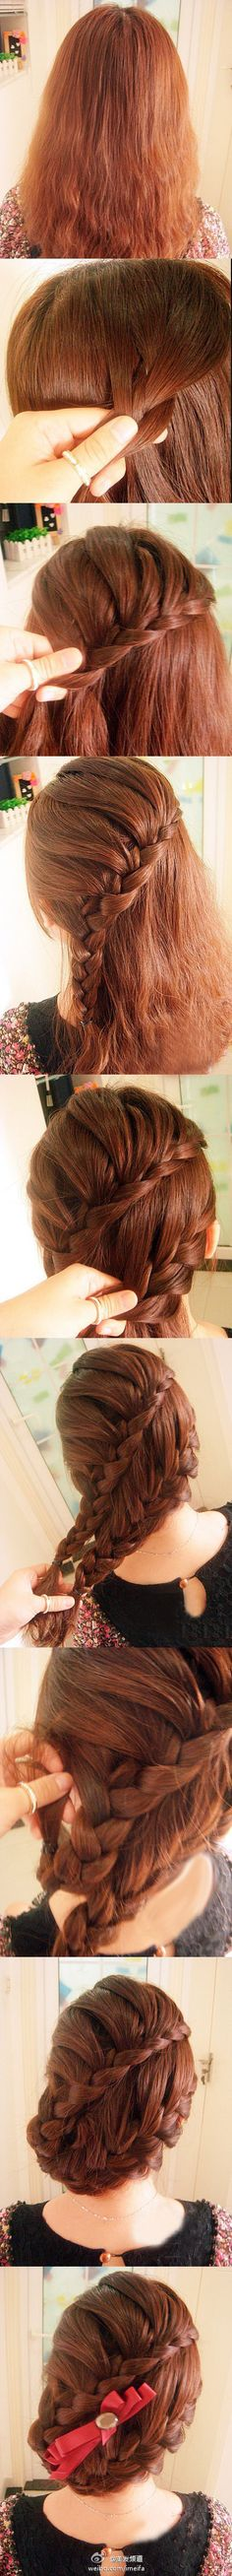 1000+ images about Tender...Love..and Hair! on Pinterest | Yarn Braids ...